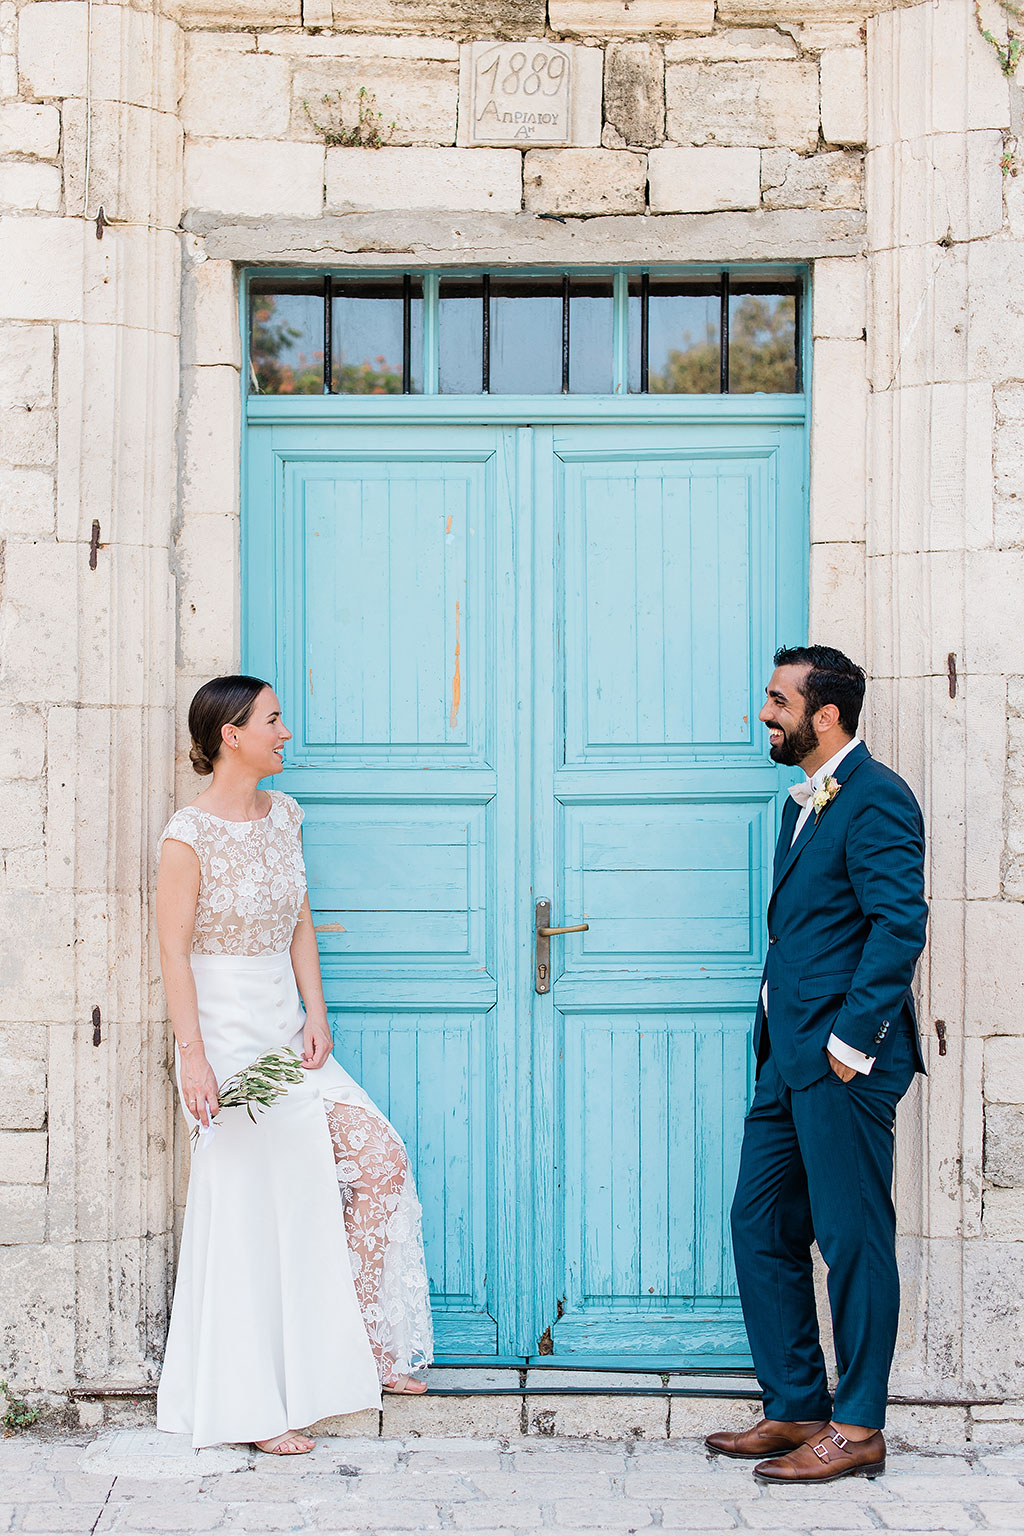 bride and groom in front of the old house door, George Kostopoulos Fine Art Photography